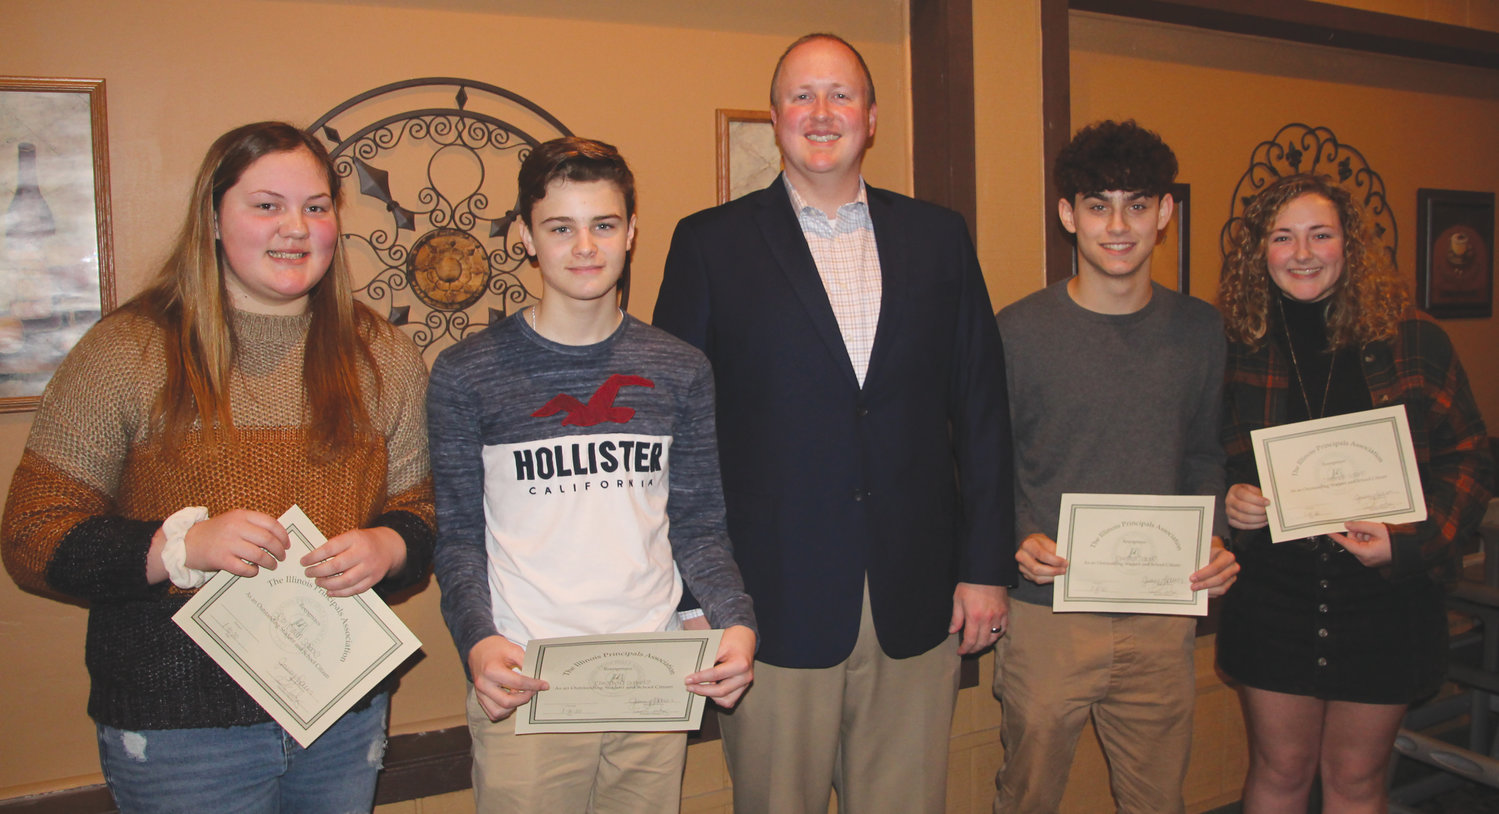 Chrisman students were among those honored at the Edgar County Principal's Breakfast Friday, Jan. 10, at Tuscany Restaurant in Paris. Pictured, from left, are Peyton Gore, Triston Lehmkuhl, Chrisman Junior and Senior High School Principal Cole Huber, Phillip Warner and Alexis Lewsader.